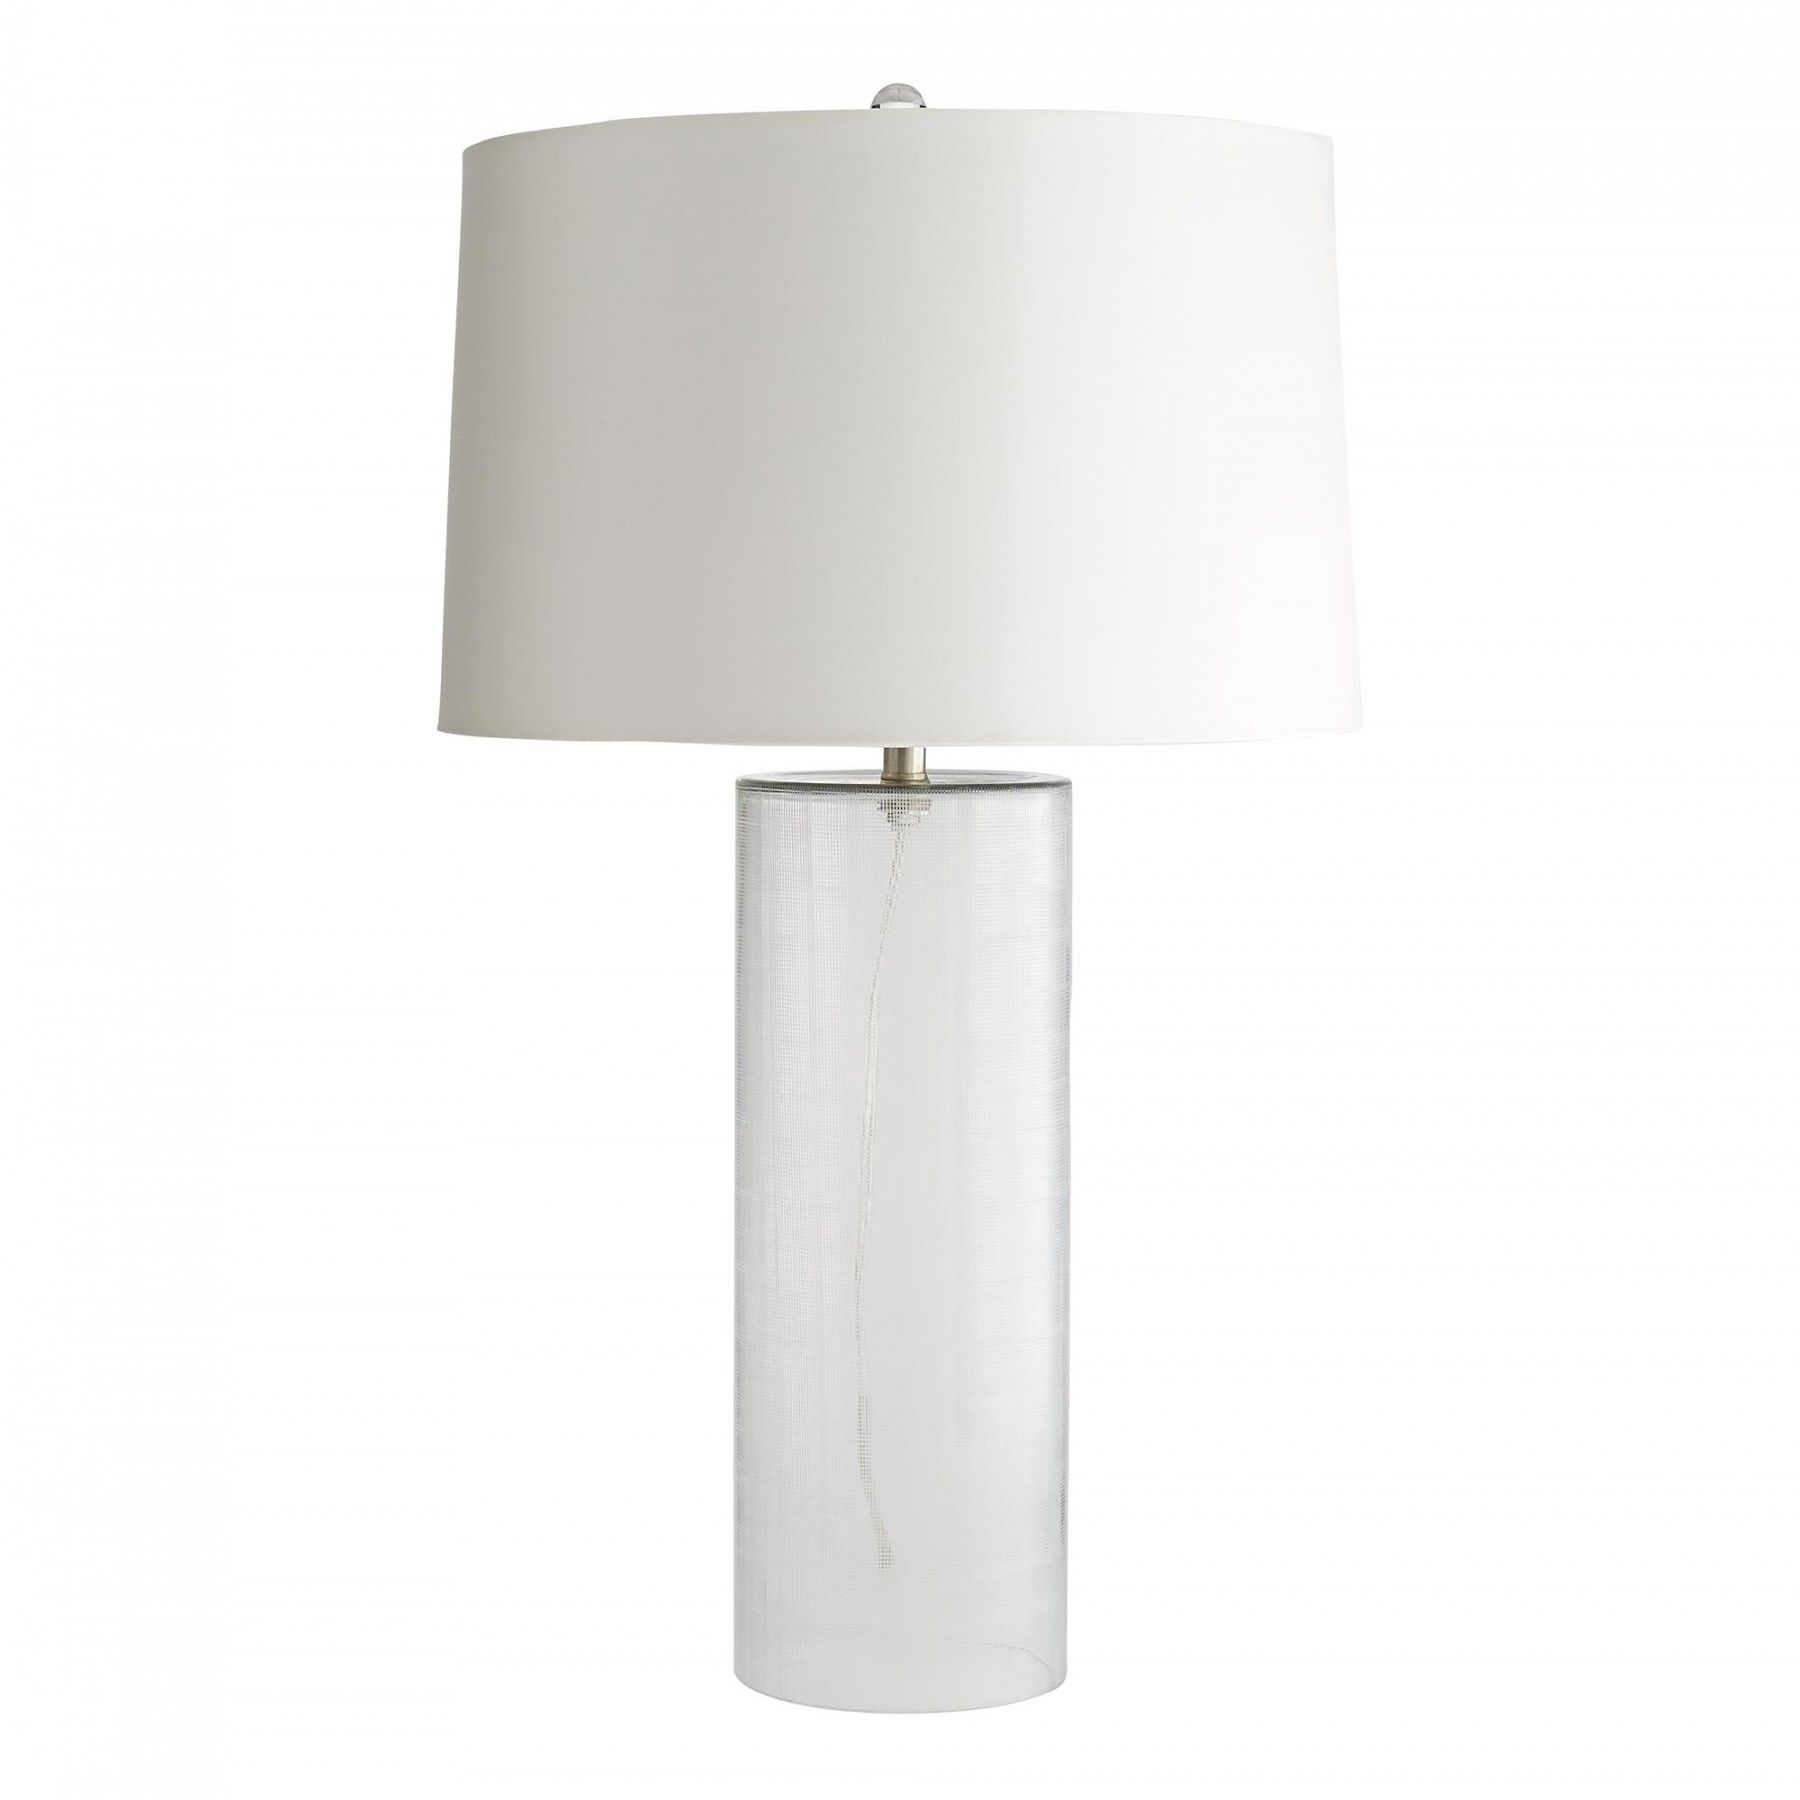 J, two on sofa console. Leigh Lamp Lamp, Table lamp